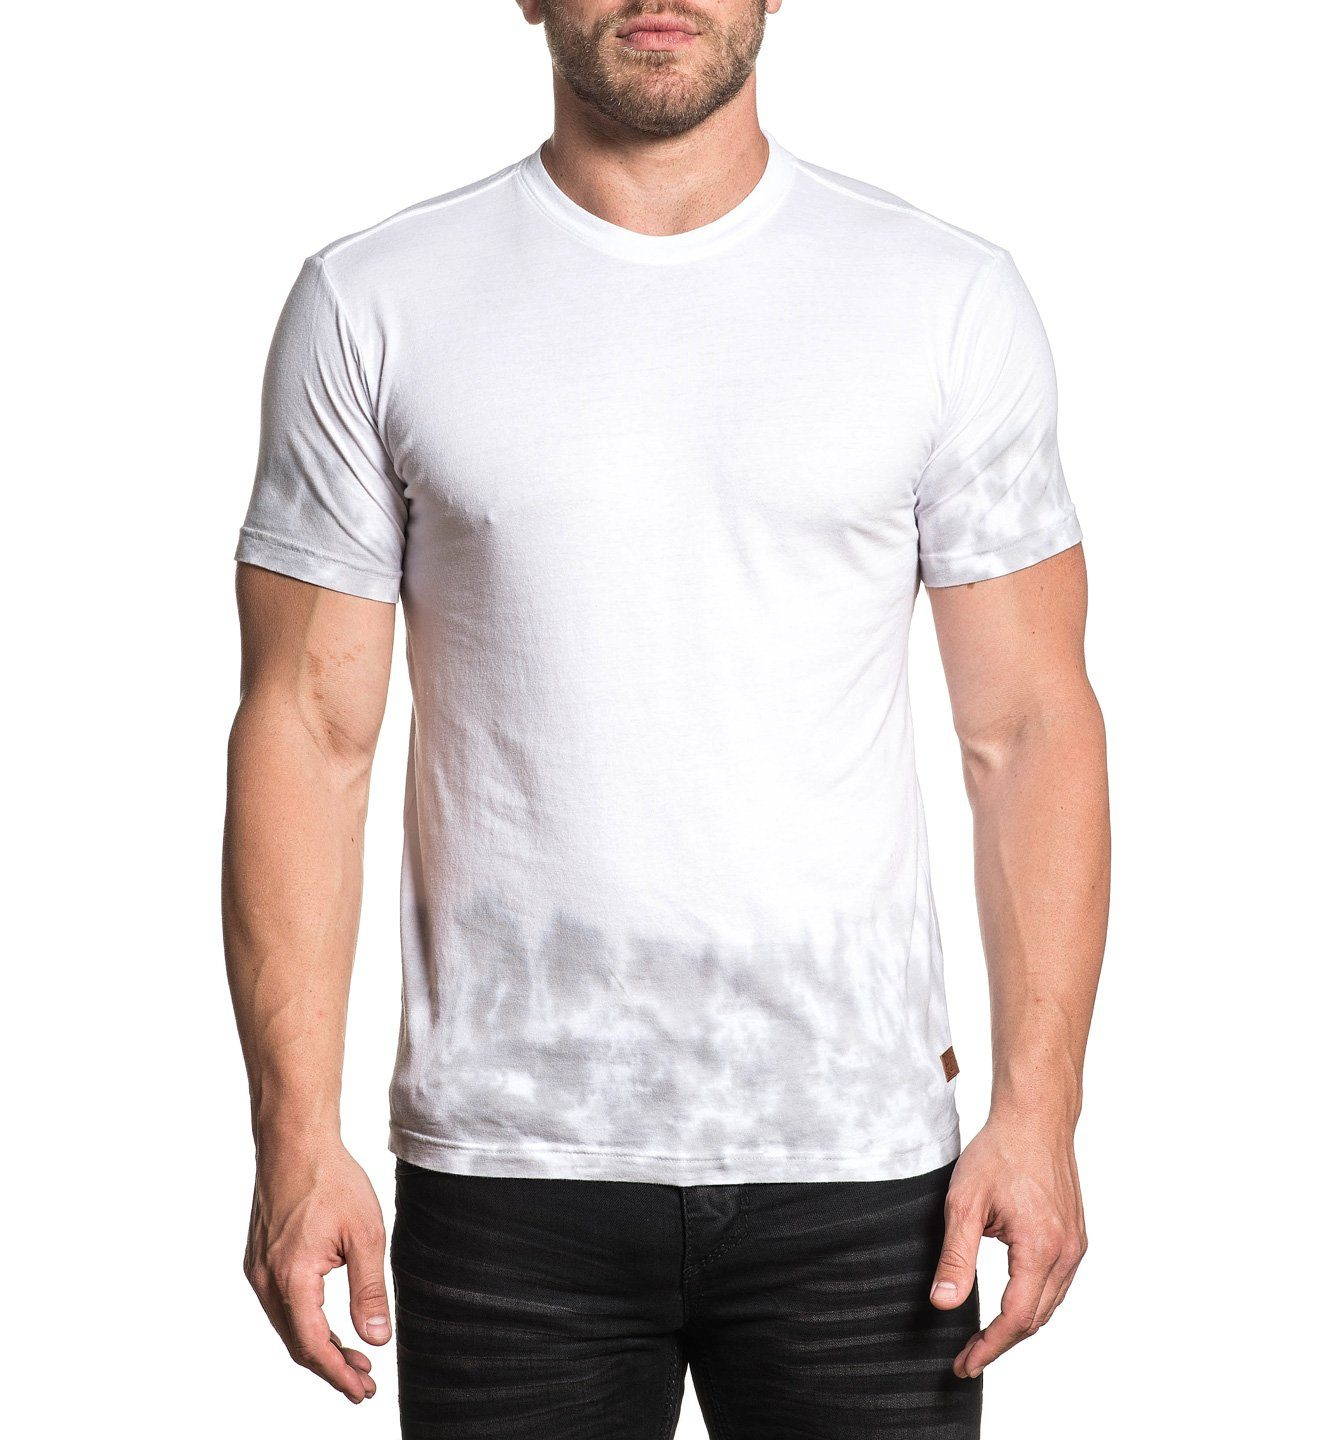 Mens Short Sleeve Tees - Standard Supply M-100